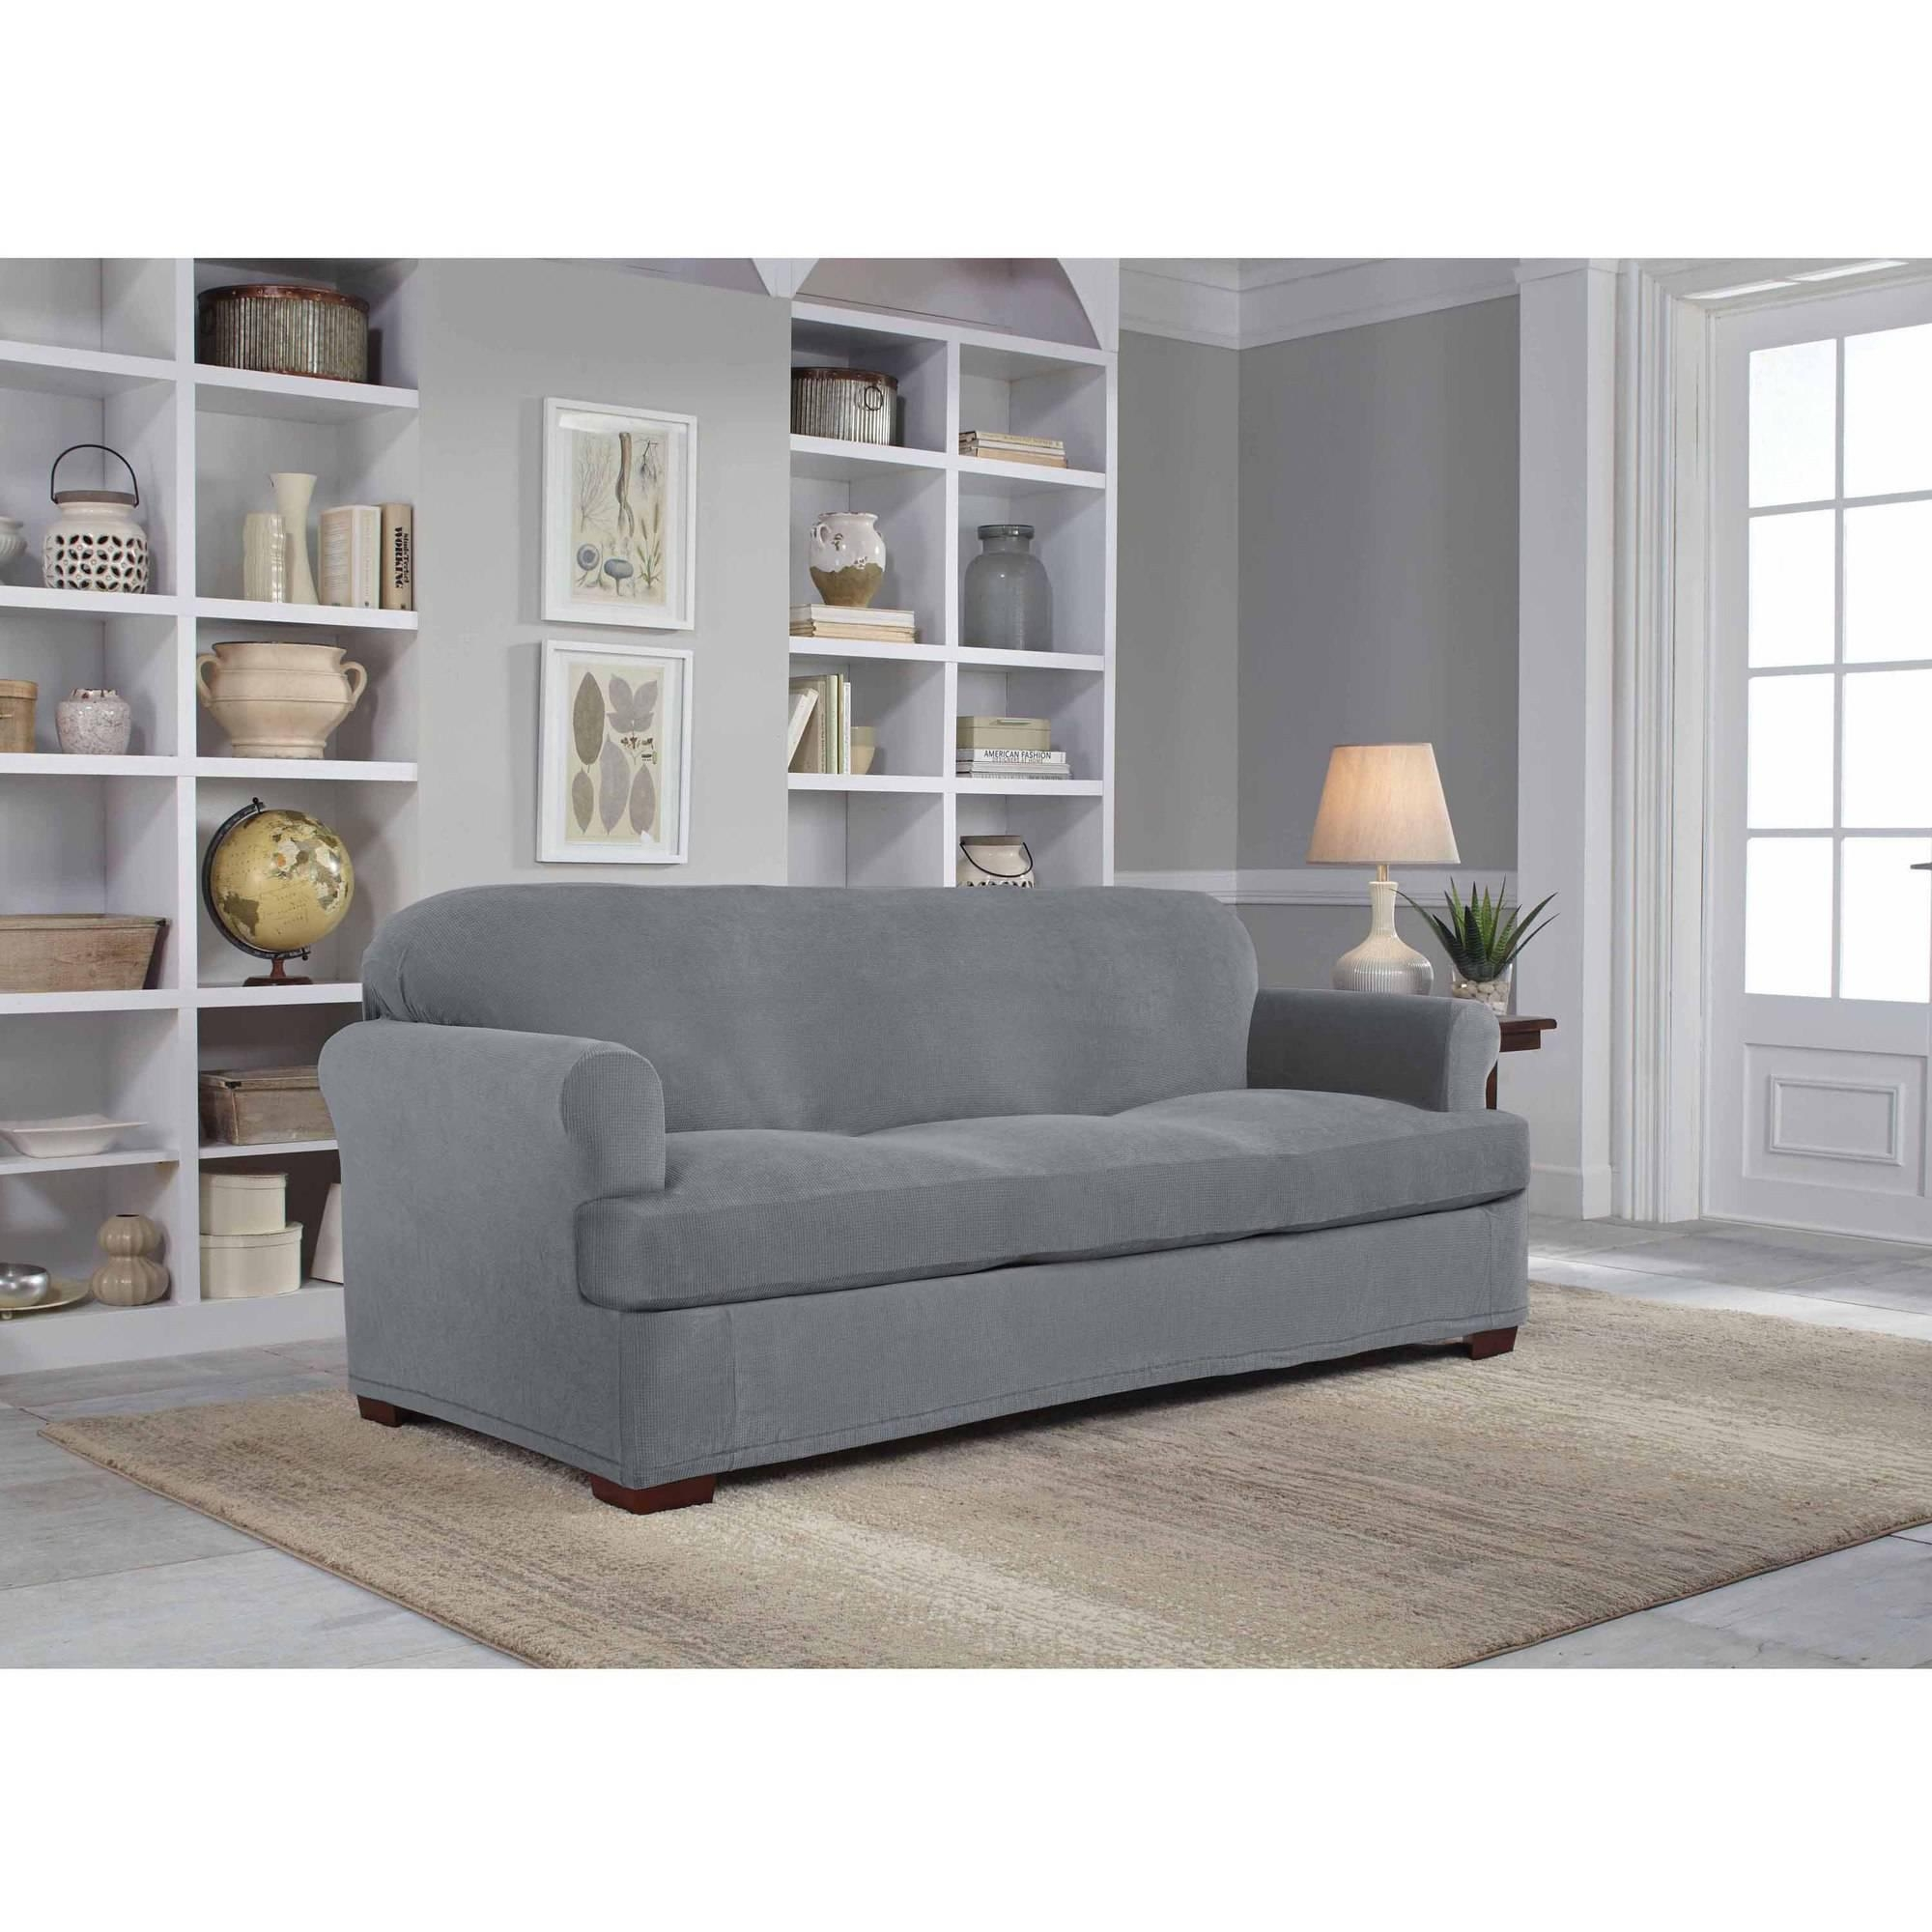 Serta Stretch Grid Slipcover, Sofa, 2 Piece T Cushion – Walmart Regarding 2 Piece Sofa Covers (Image 15 of 27)